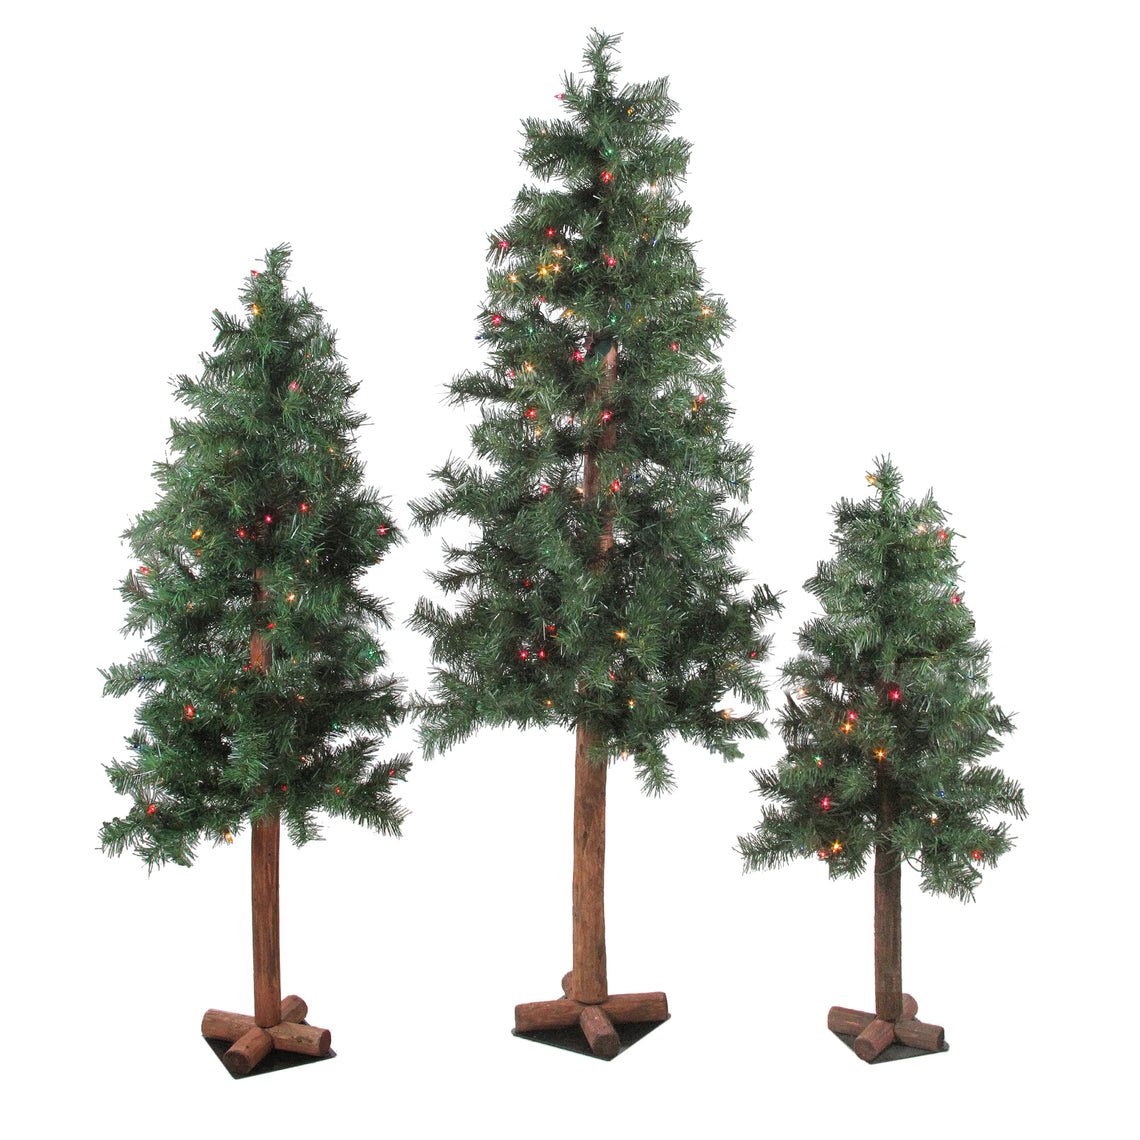 Set of 3 Pre-Lit Woodland Alpine Artificial Christmas Trees 3'  4' and 5' - Multi Lights